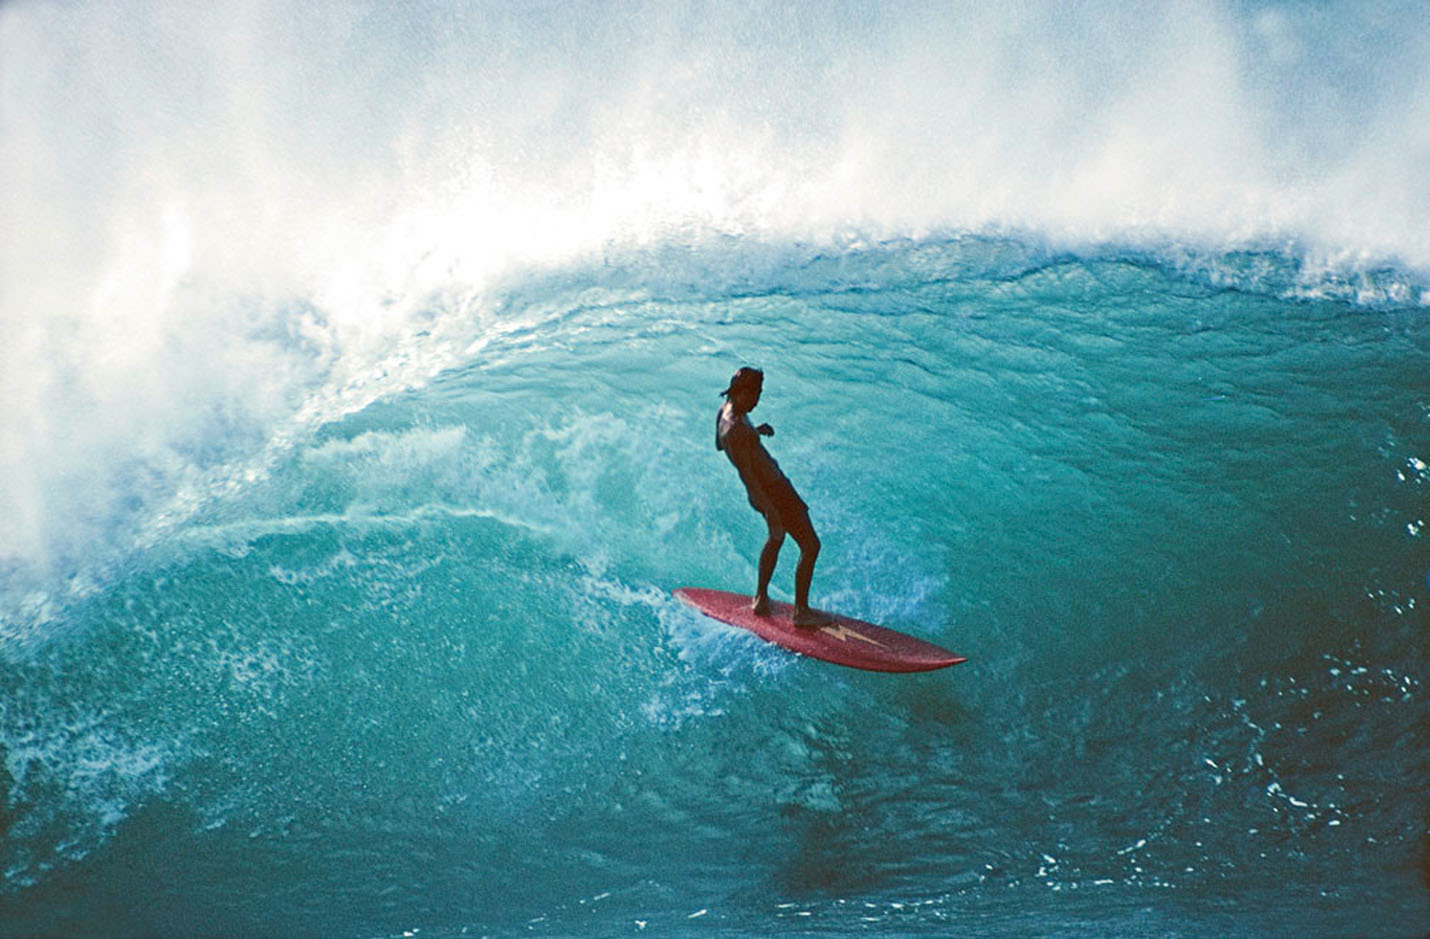 Gerry Lopez at Pipeline, Hawaii in the '70s